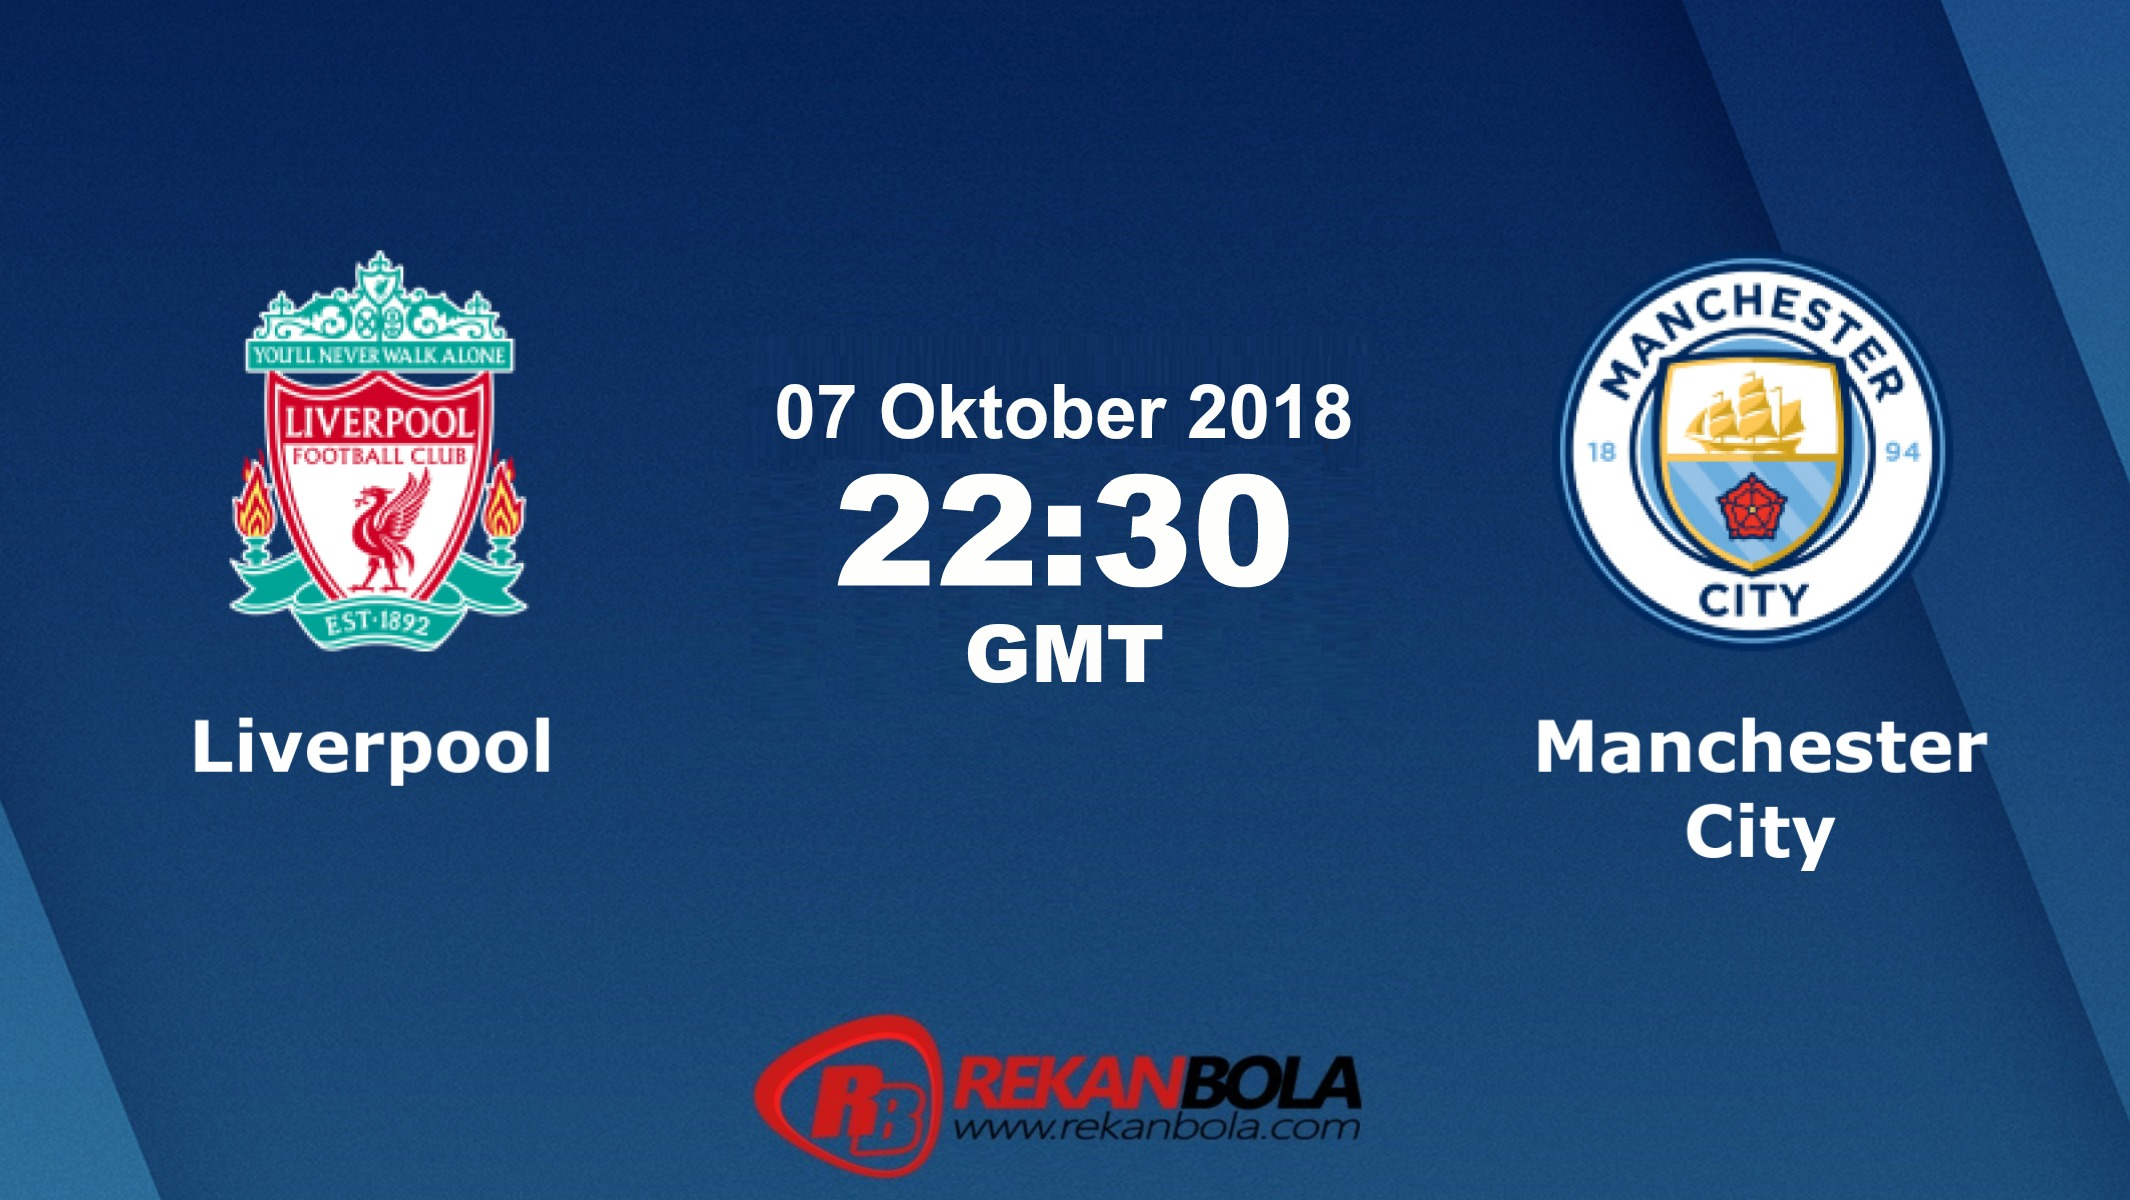 Nonton Siaran Live Streaming Liverpool Vs Man City 07 Oktober 2018